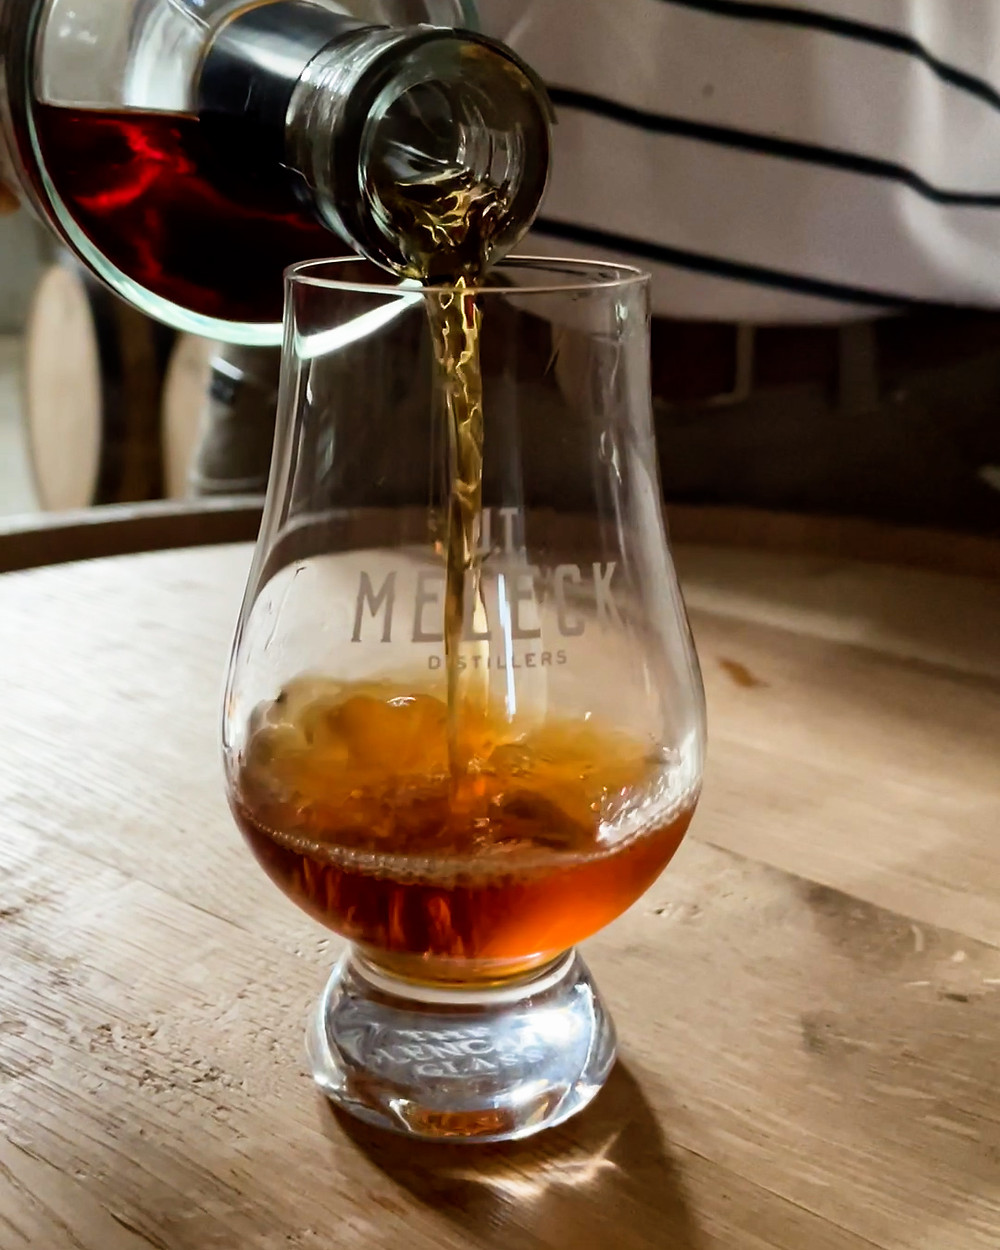 Whiskey being poured into a whiskey glass.